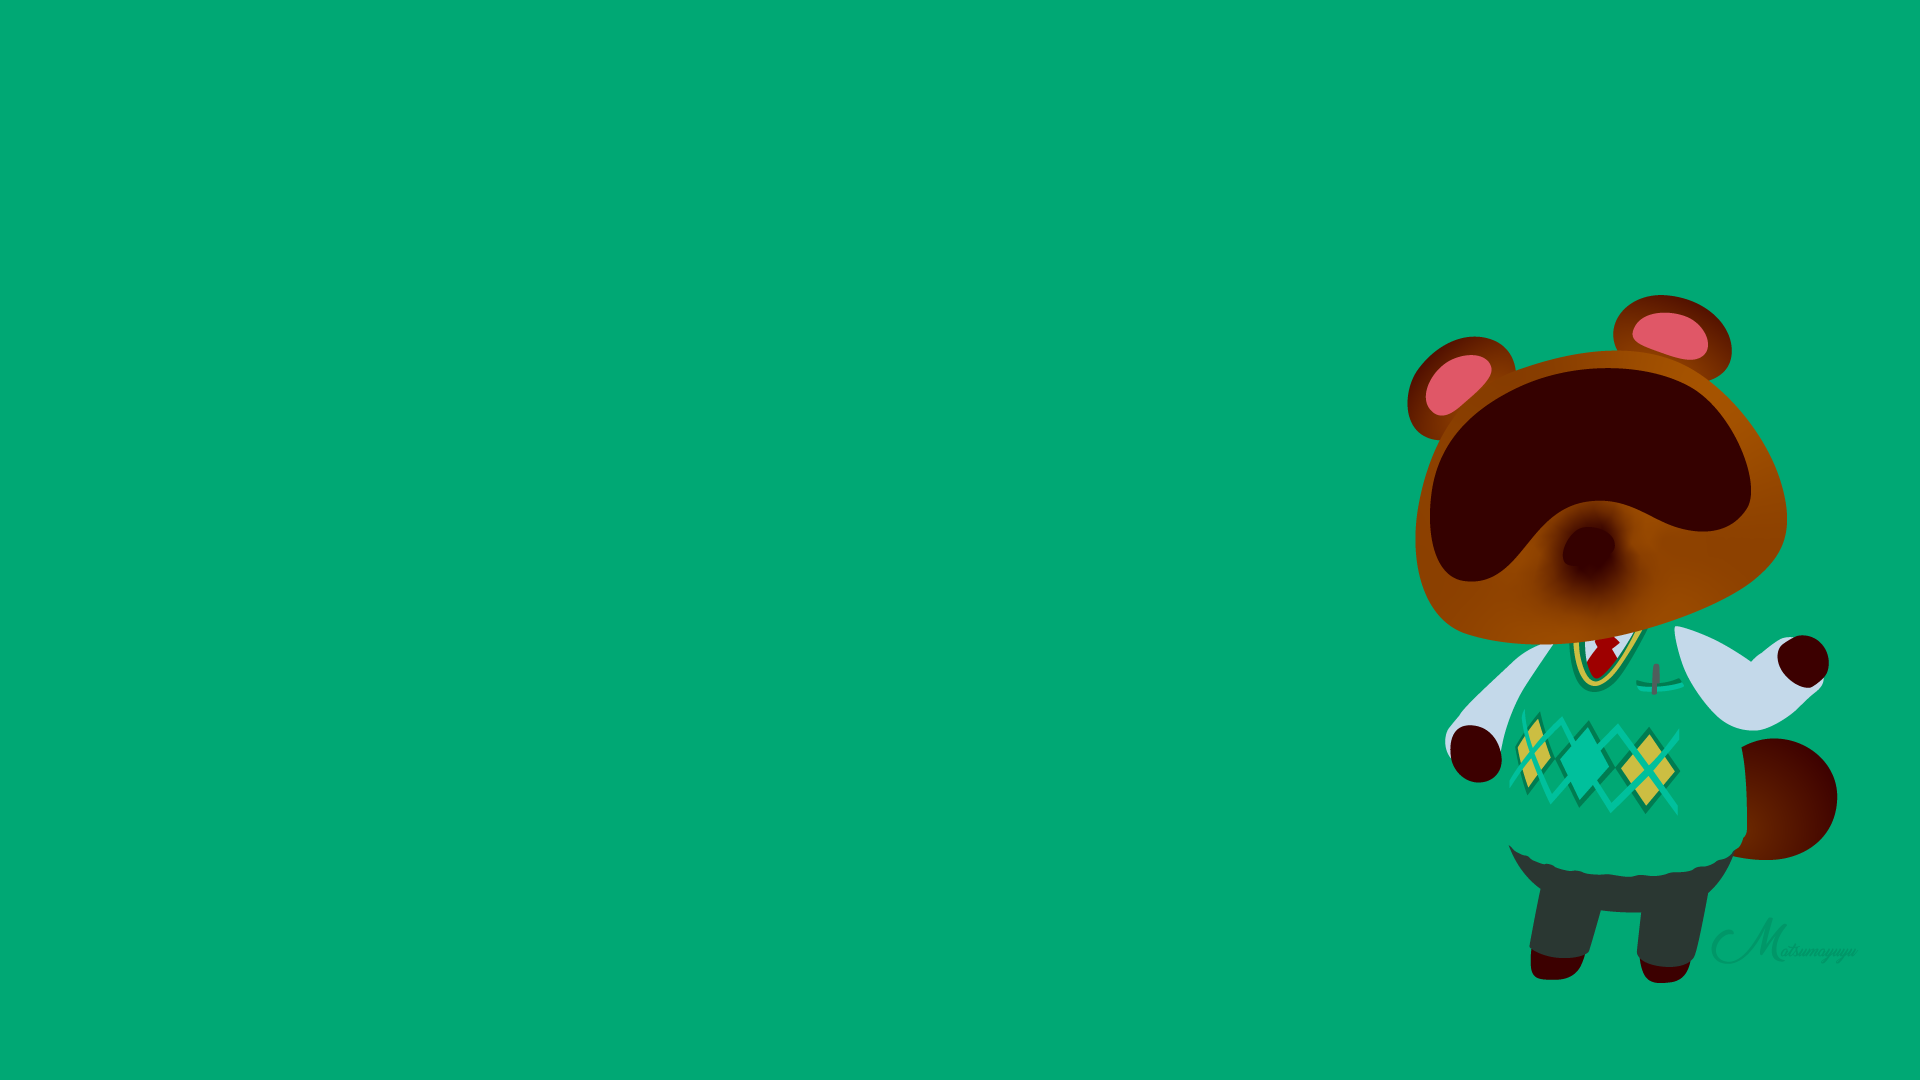 Tom Nook Wallpapers Top Free Tom Nook Backgrounds Wallpaperaccess